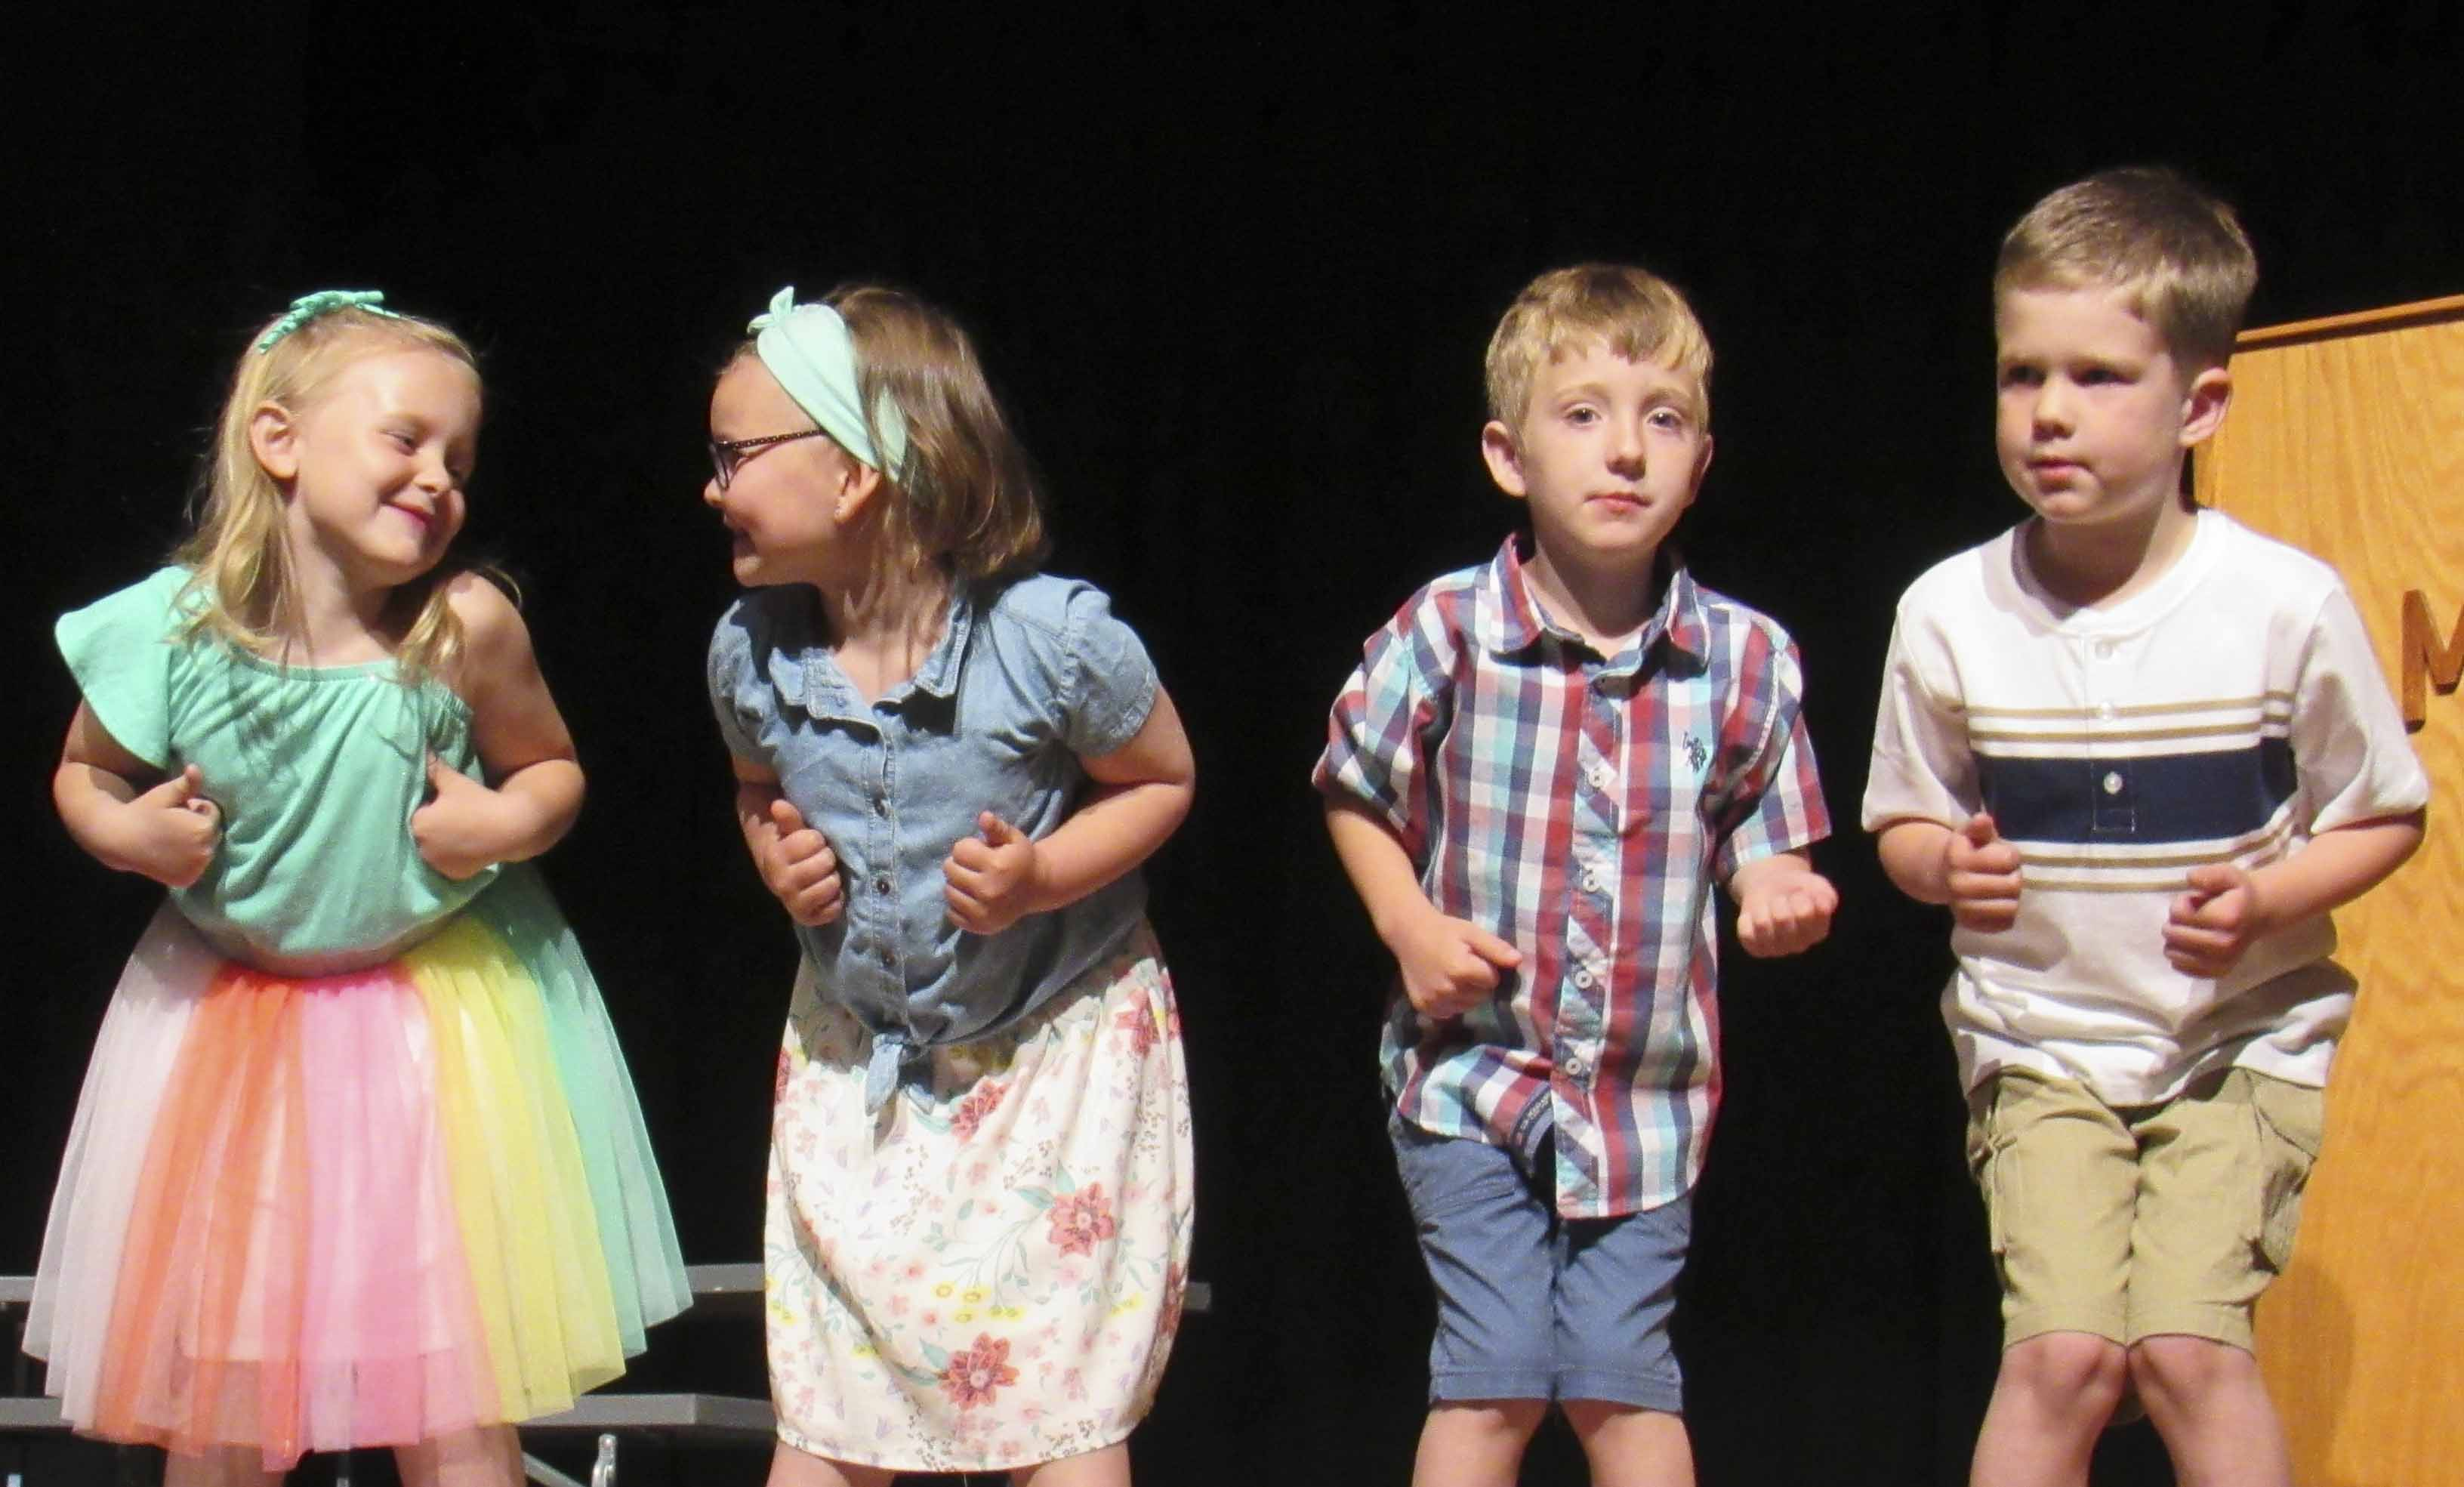 The Monticello preschoolers had fun singing silly songs during their May 17 graduation ceremony. Getting into the actions from left are Scarlett McDermott-Ray, Morgan Quinn, Ryker Hardin, and Isaac Reade.